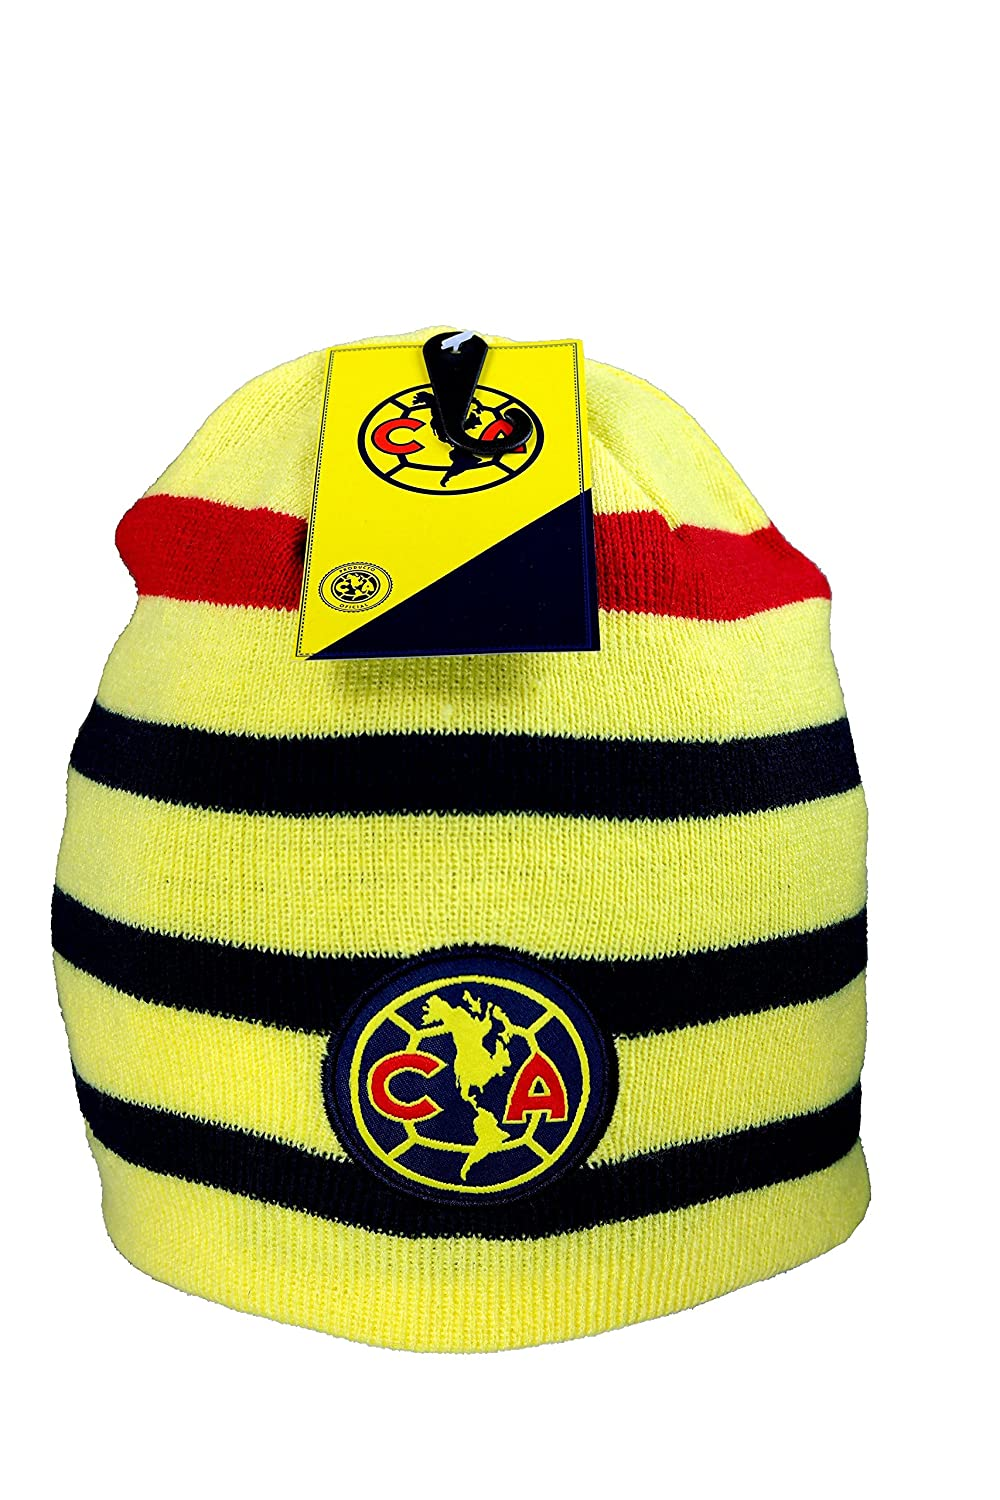 Club America Authentic Official Licensed Product Soccer Beanie 04 3